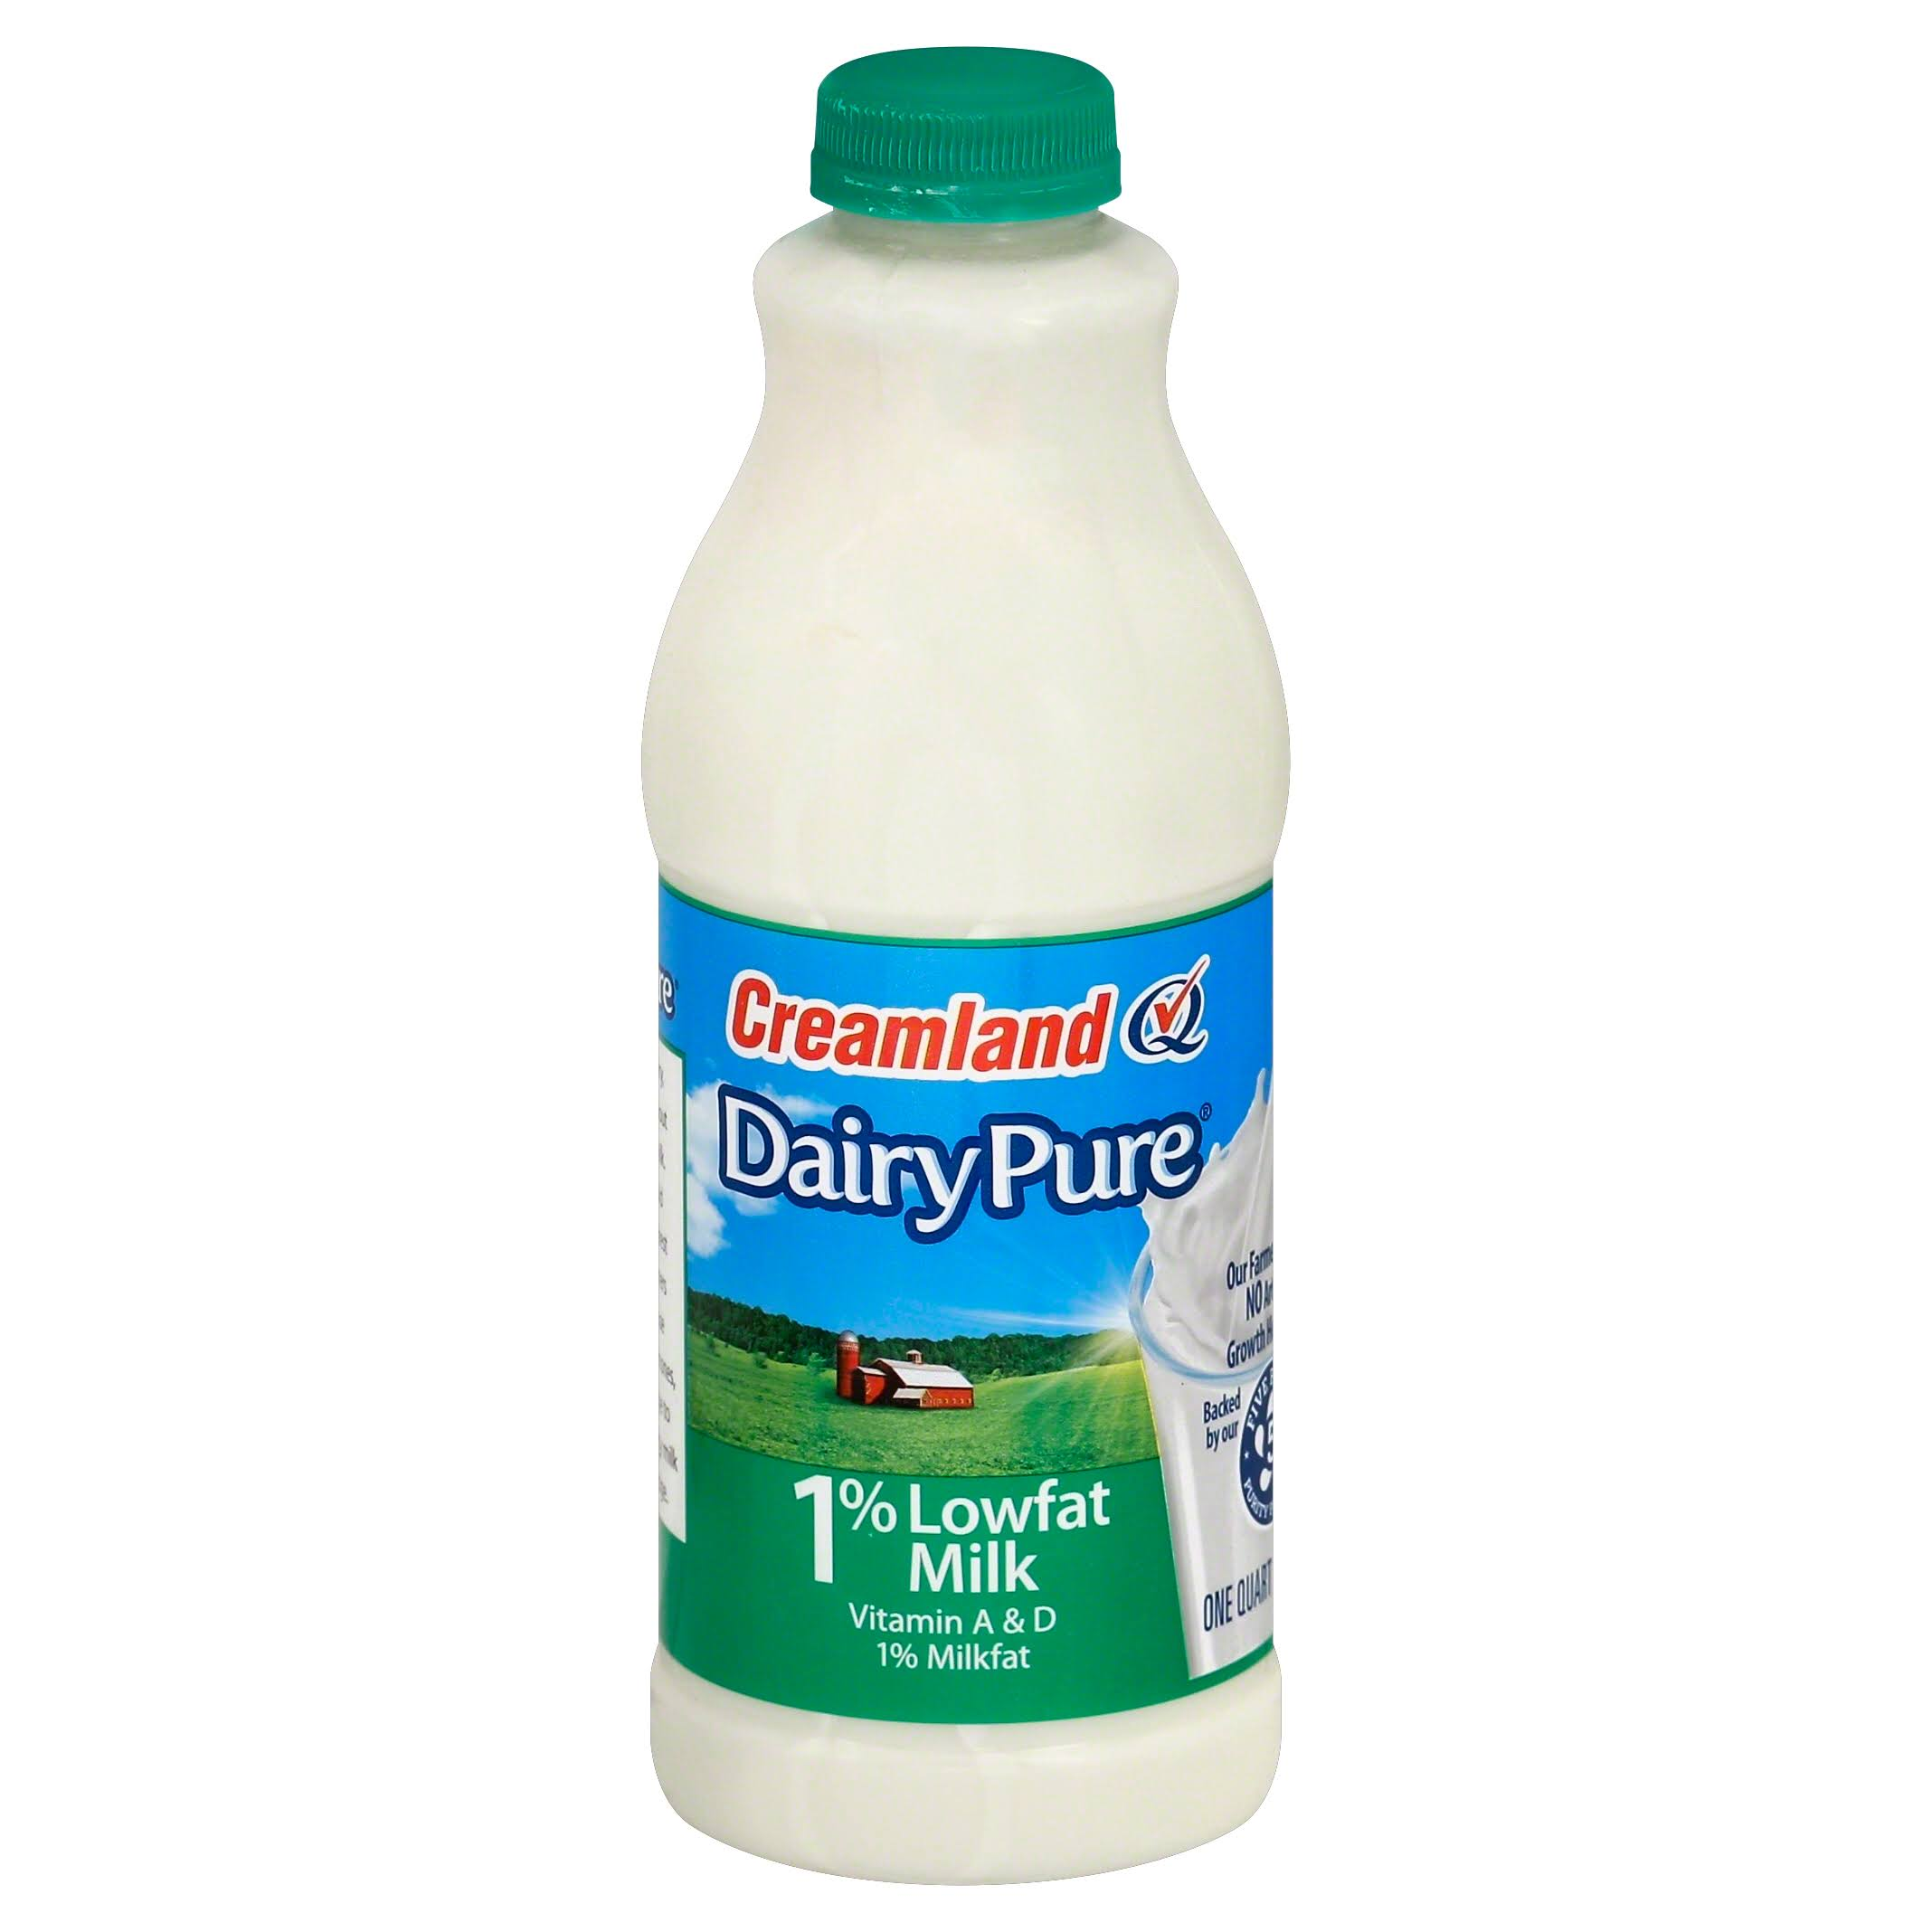 Berkeley Farms Dairy Pure Lowfat Milk - 1qt